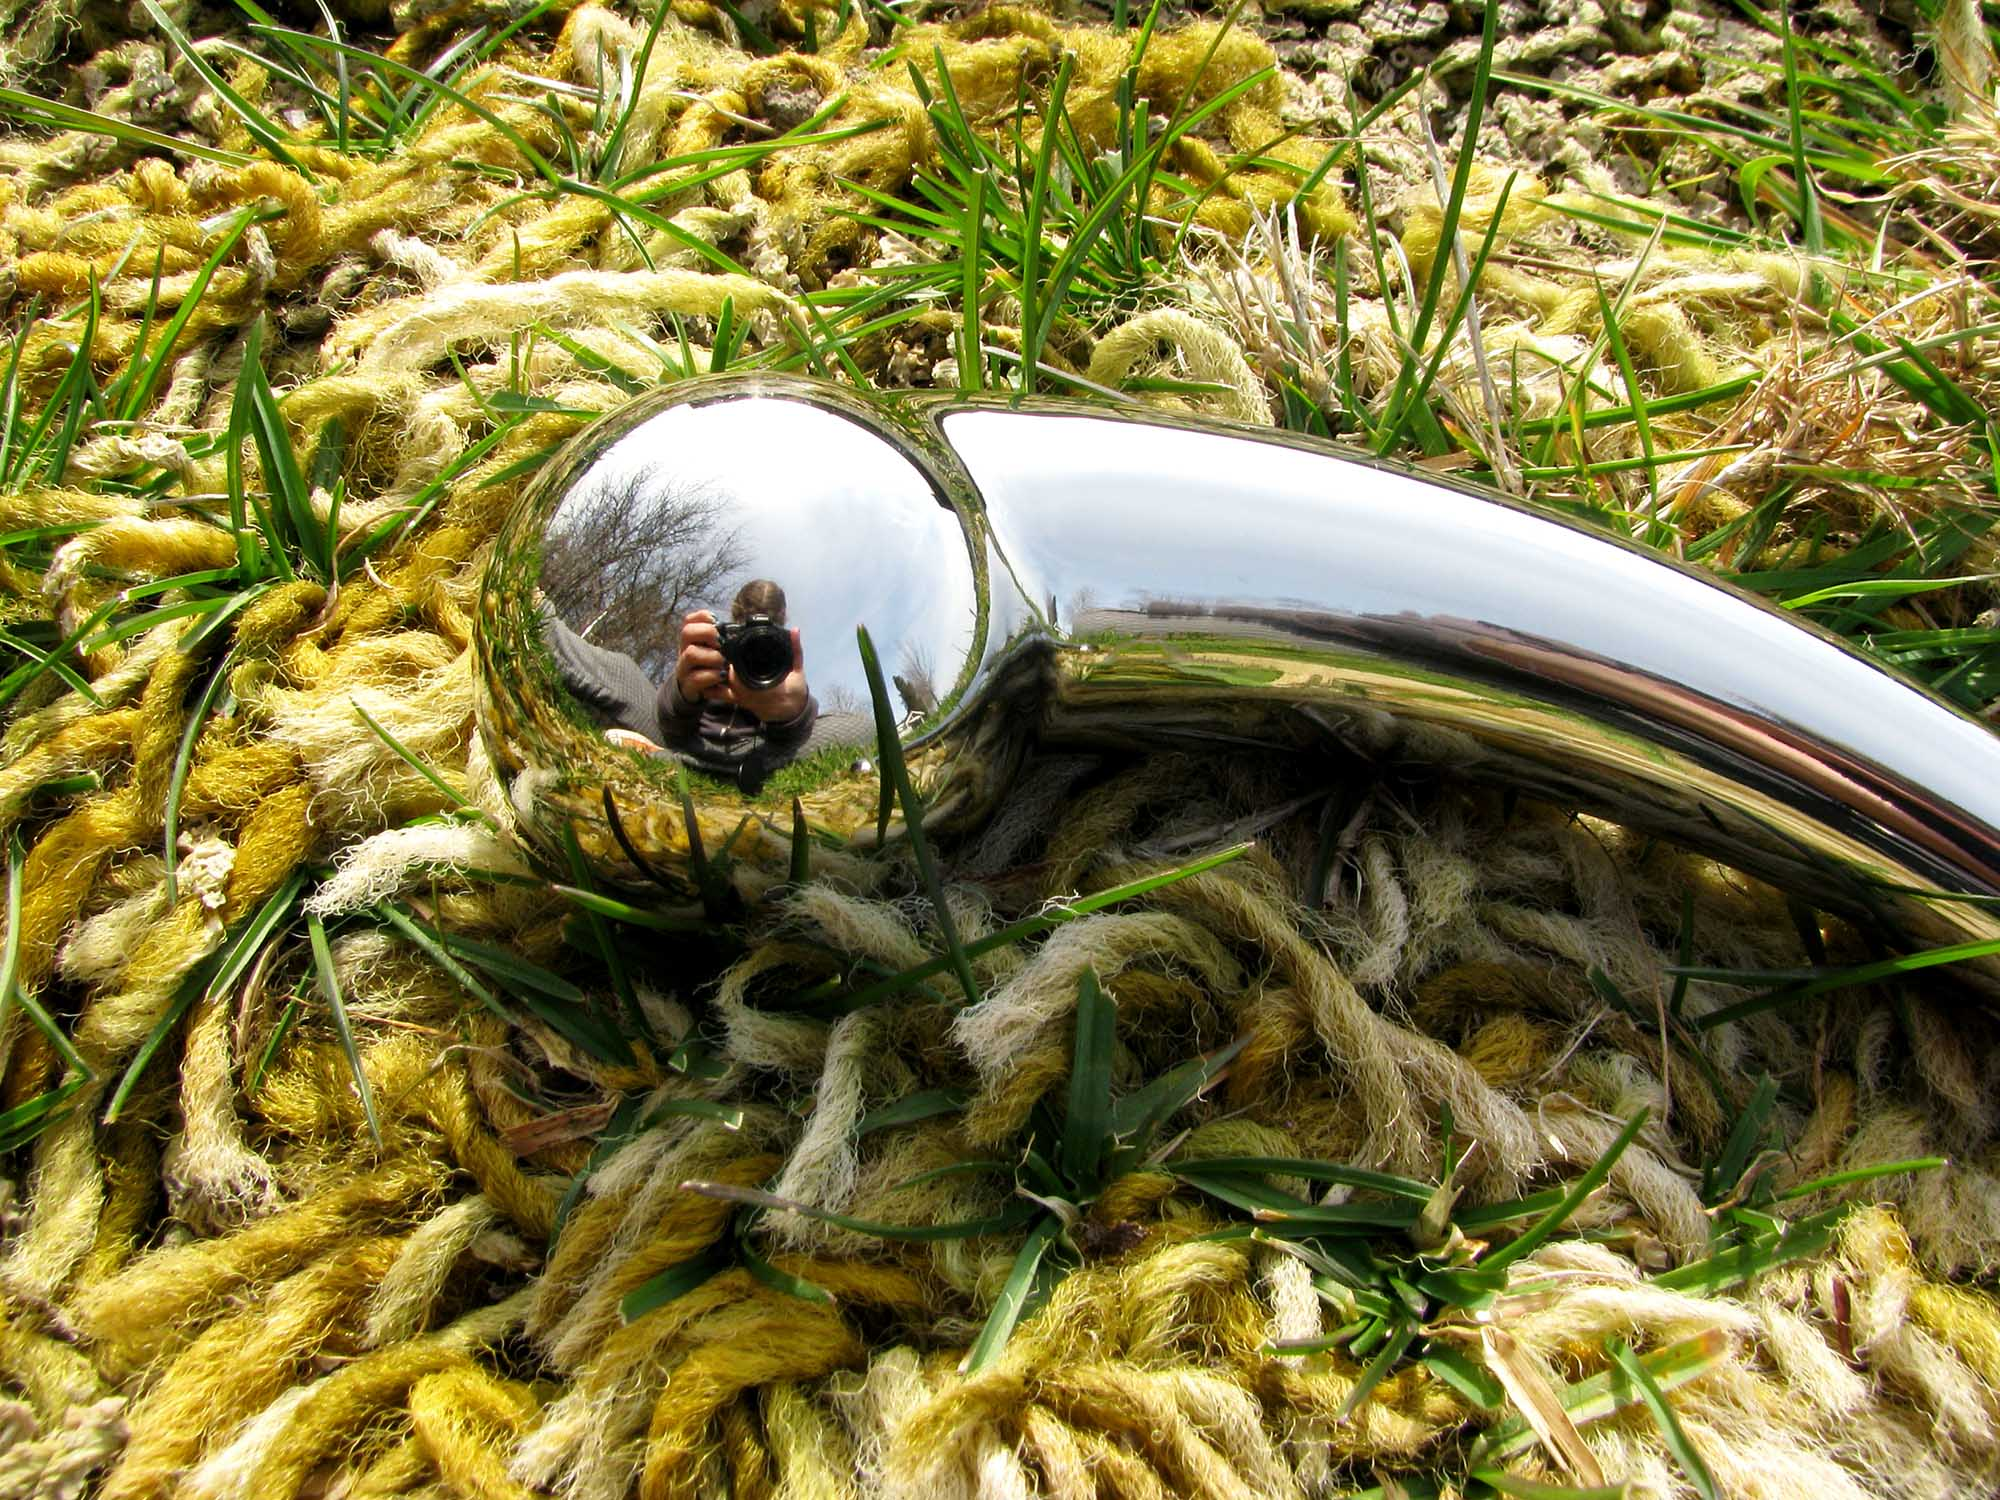 njoy Pure Wand stainless steel G-spot dildo on the ground, with golden shag carpet growing through the grass.